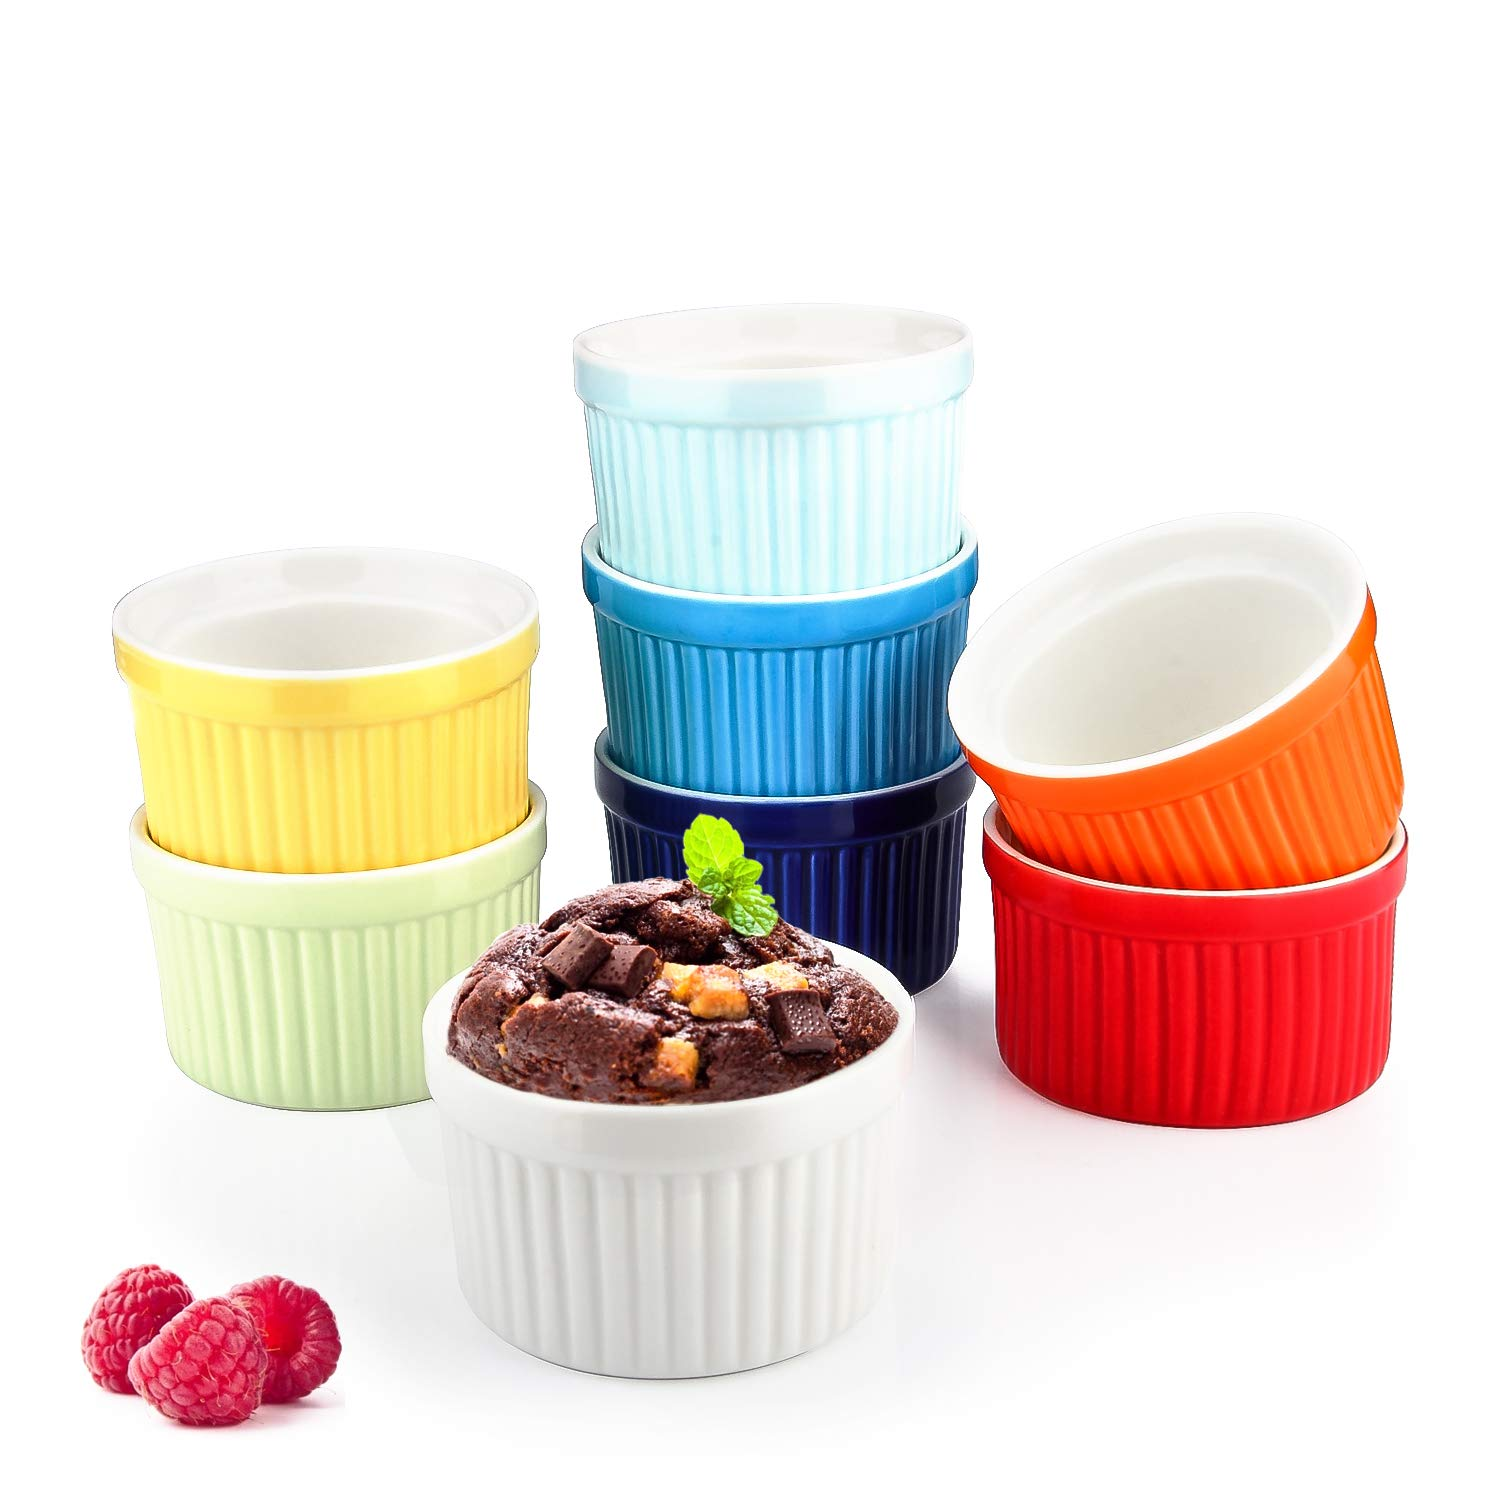 4 Oz Ramekin Bowls,WERTIOO 8 PCS Bakeware Set for Baking and Cooking, Oven Safe Sleek Porcelain Colorful Ramikins for Pudding, Creme Brulee, Custard Cups and Souffle Small instant table tray by WERTIOO